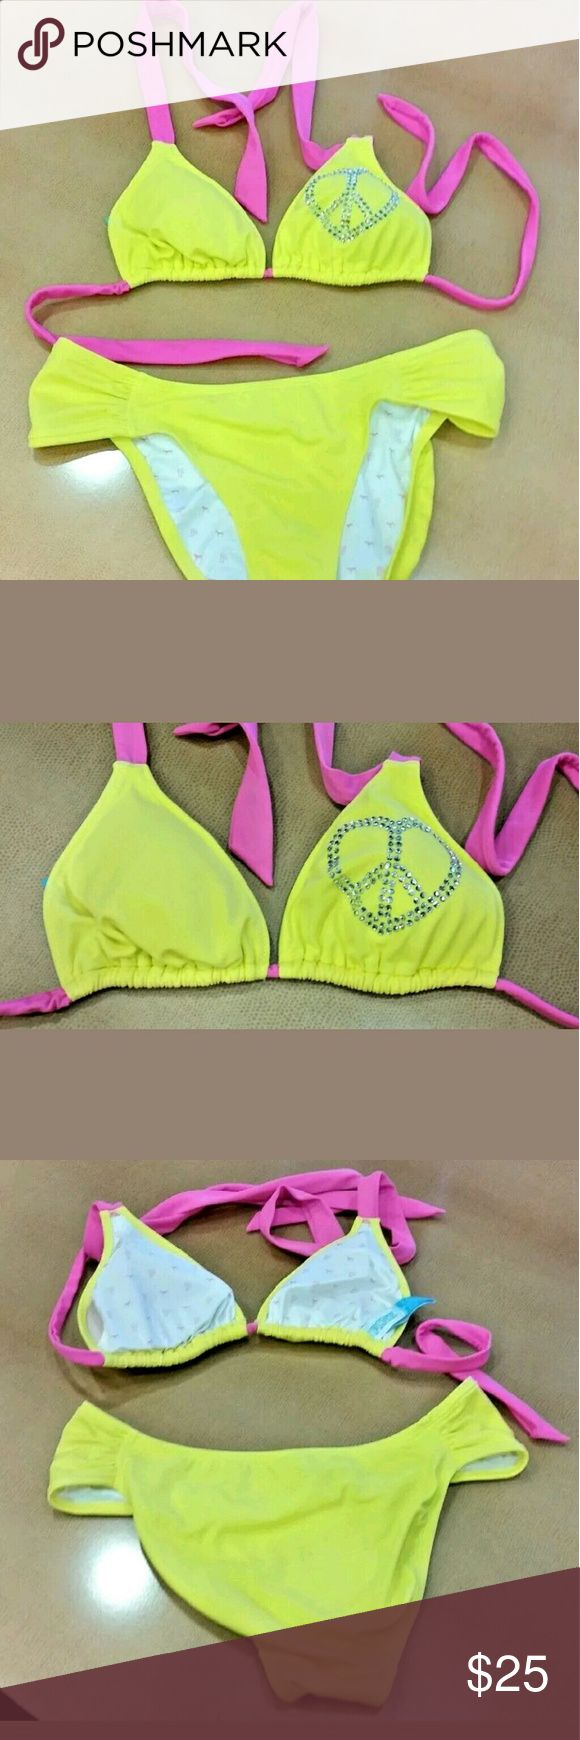 Victoria's Secret Pink Neon Yellow Bikini Medium Victoria's Secret Pink Neon Yellow and Pink Rhinestone Embellished Bikini  Triangle Top, Ruched Bottom  Juniors Size Medium  Gently Used - Clean Inside and Out - NO Flaws Found Upon Inspection and Photographing - See Photos for Desription  Smoke Free, Pet Friendly  Thank you for looking! Victoria's Secret Swim Bikinis